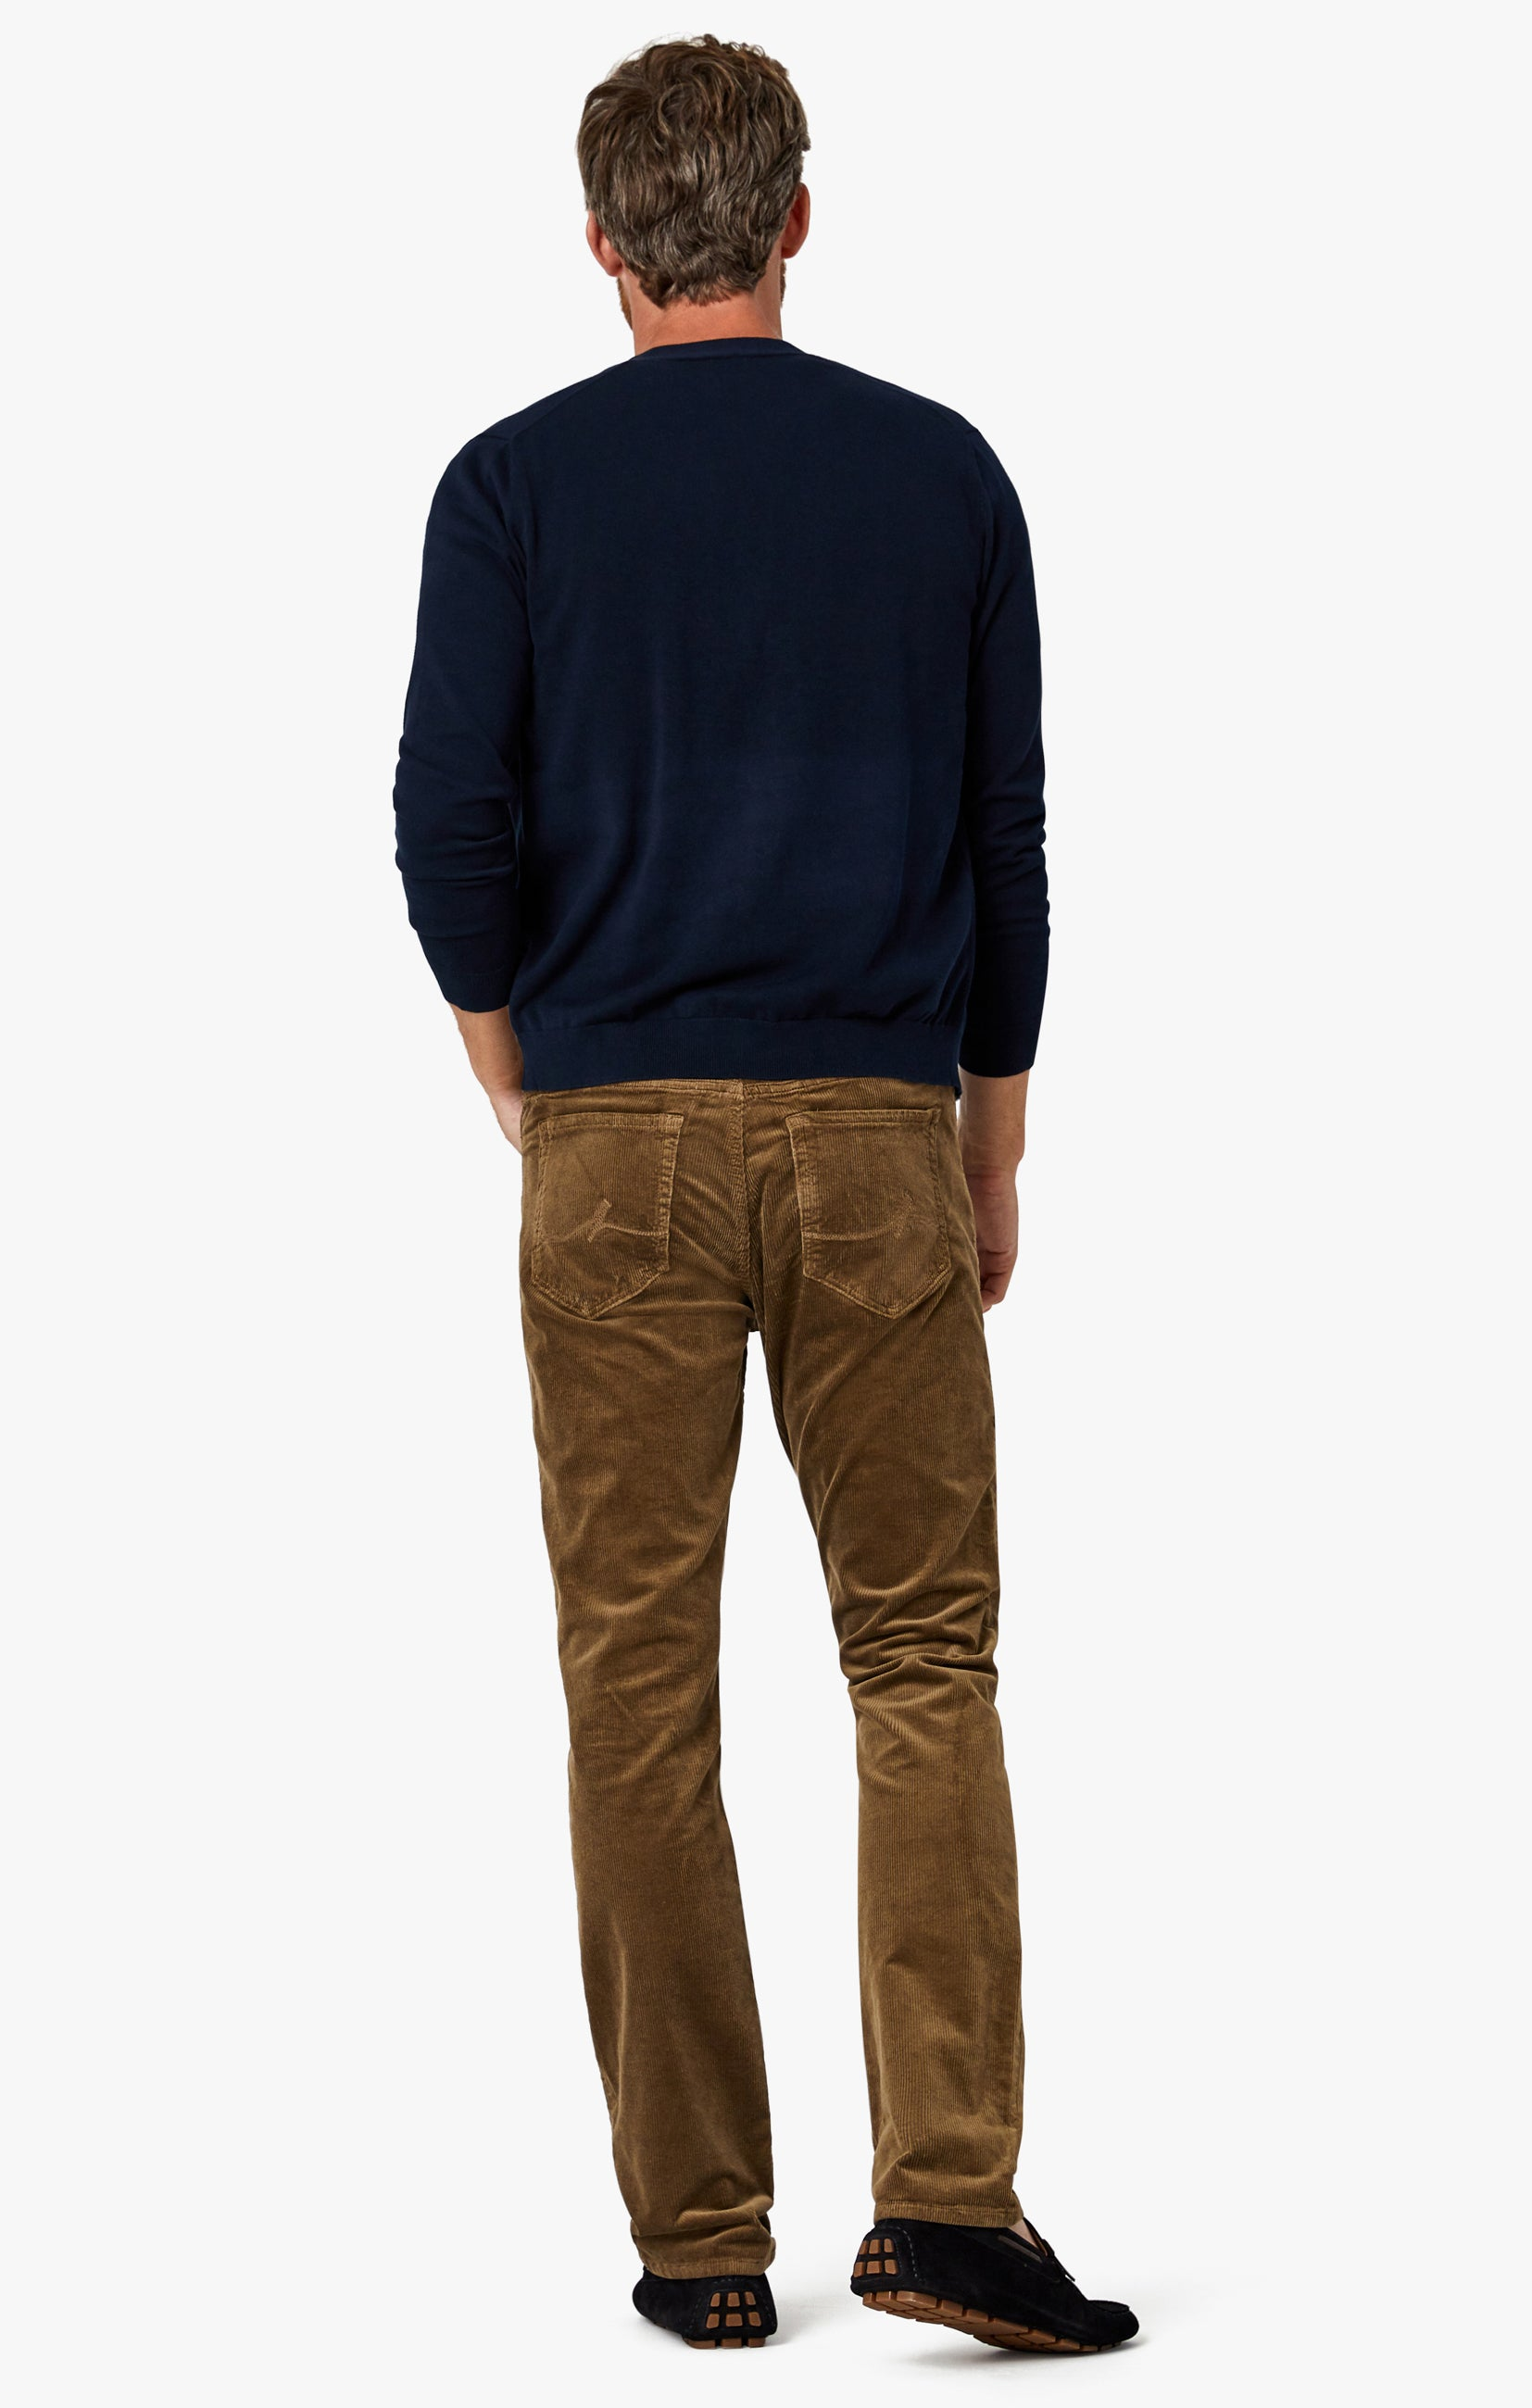 Charisma Relaxed Straight Pants in Tobacco Cord Image 9